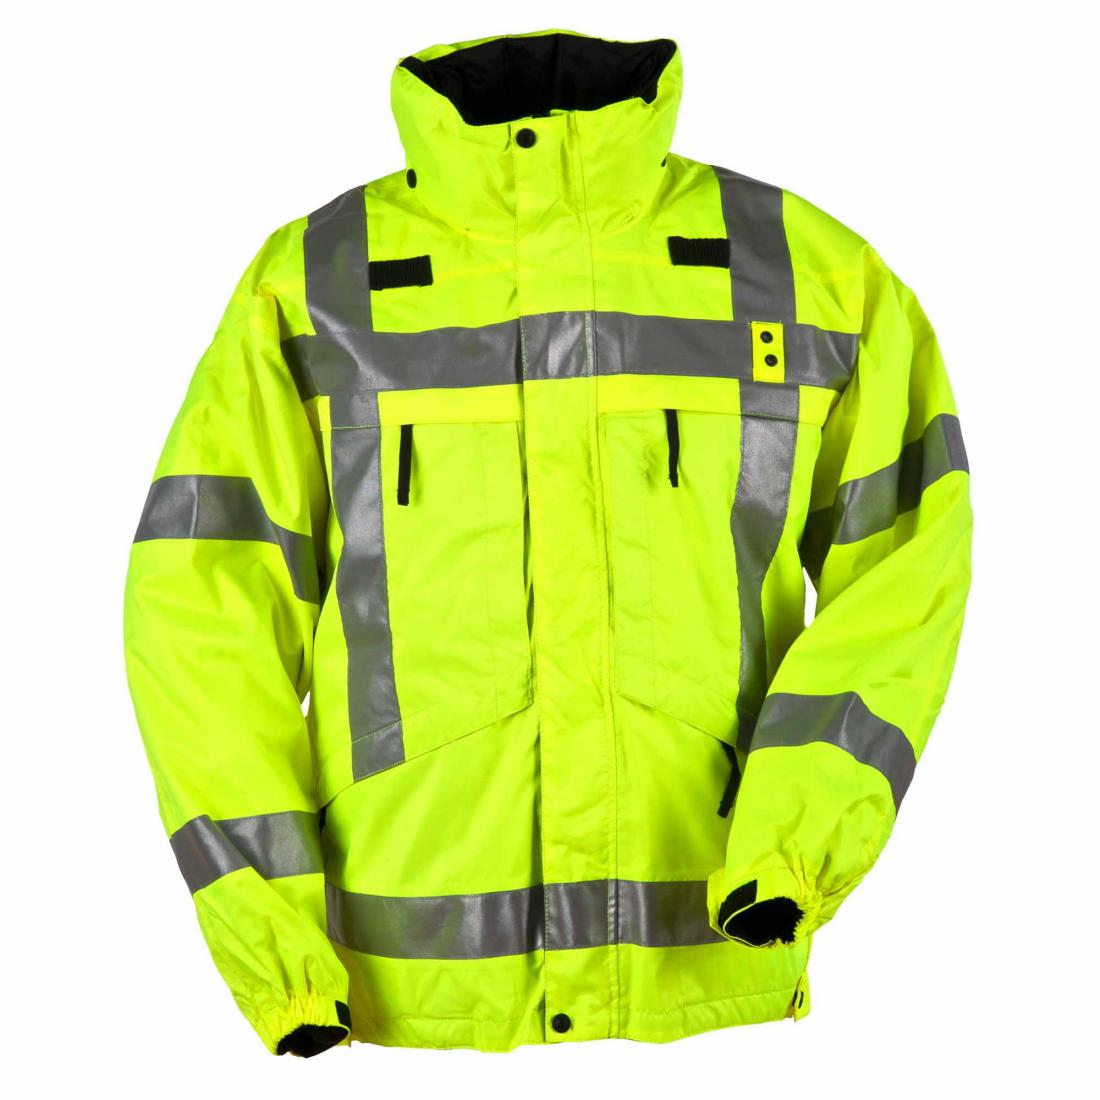 5.11 Tactical 48033 Men 3-In-1 Reversible High-Visibility Parka High-Vis Yellow